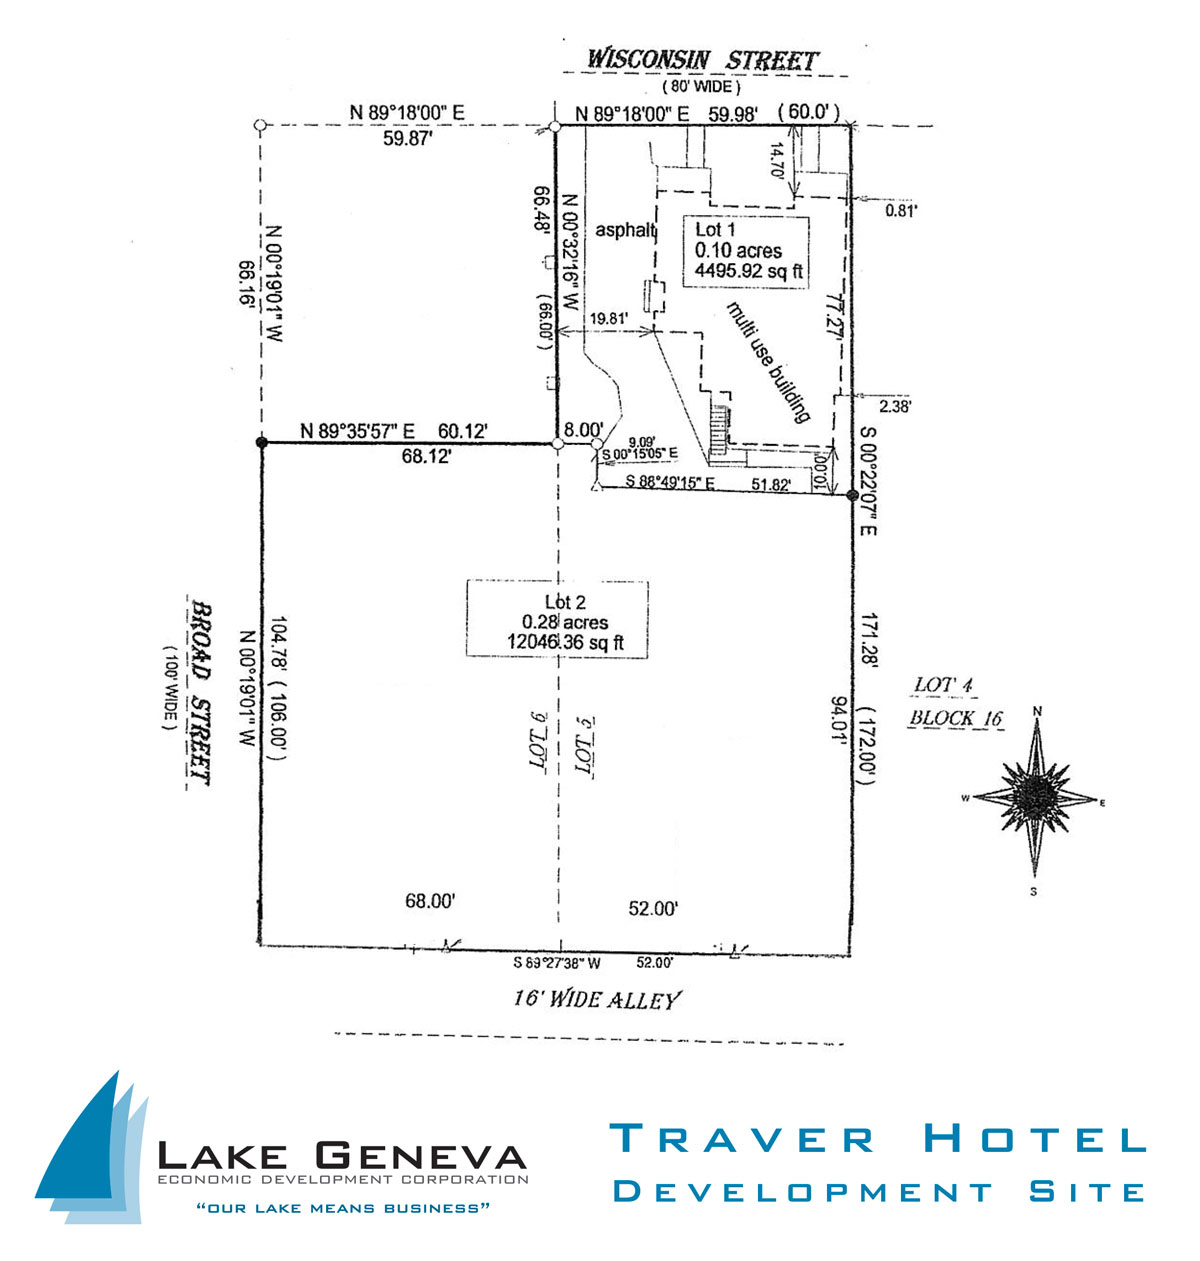 Survey map of Downtown Lake Geneva Traver Hotel site currently available for development